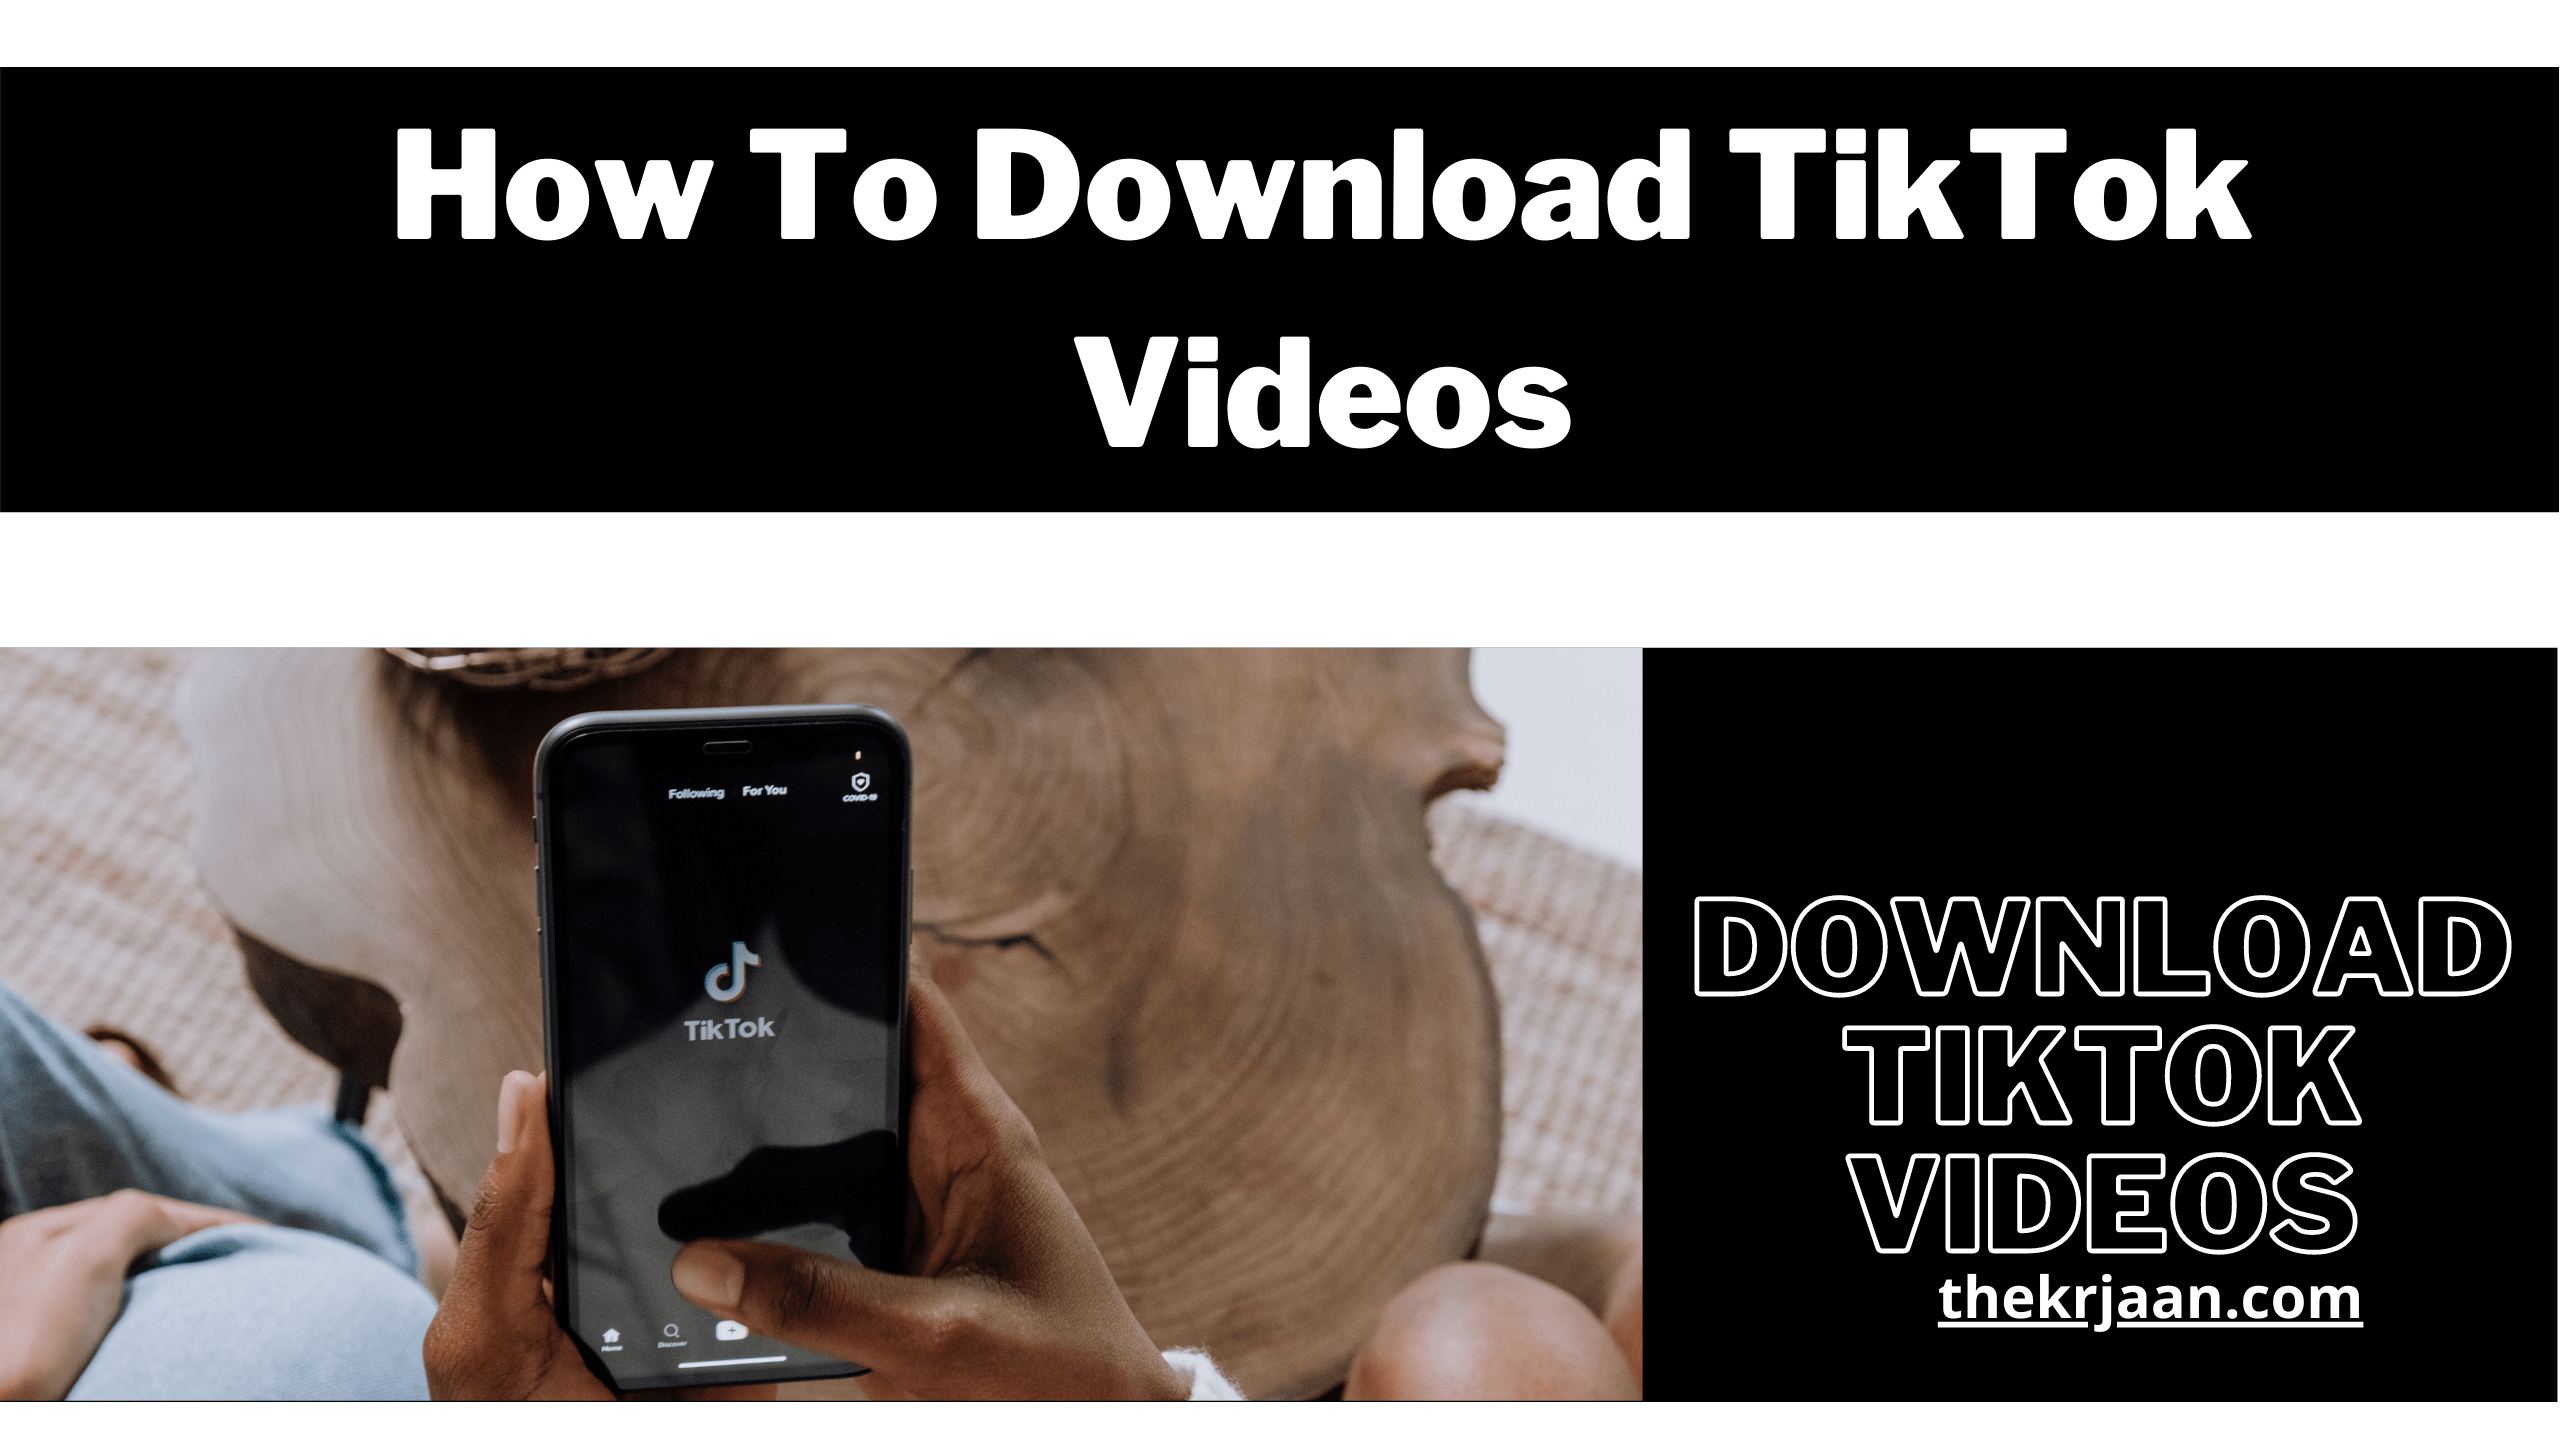 How To Download TikTok Videos | Download TikTok Videos